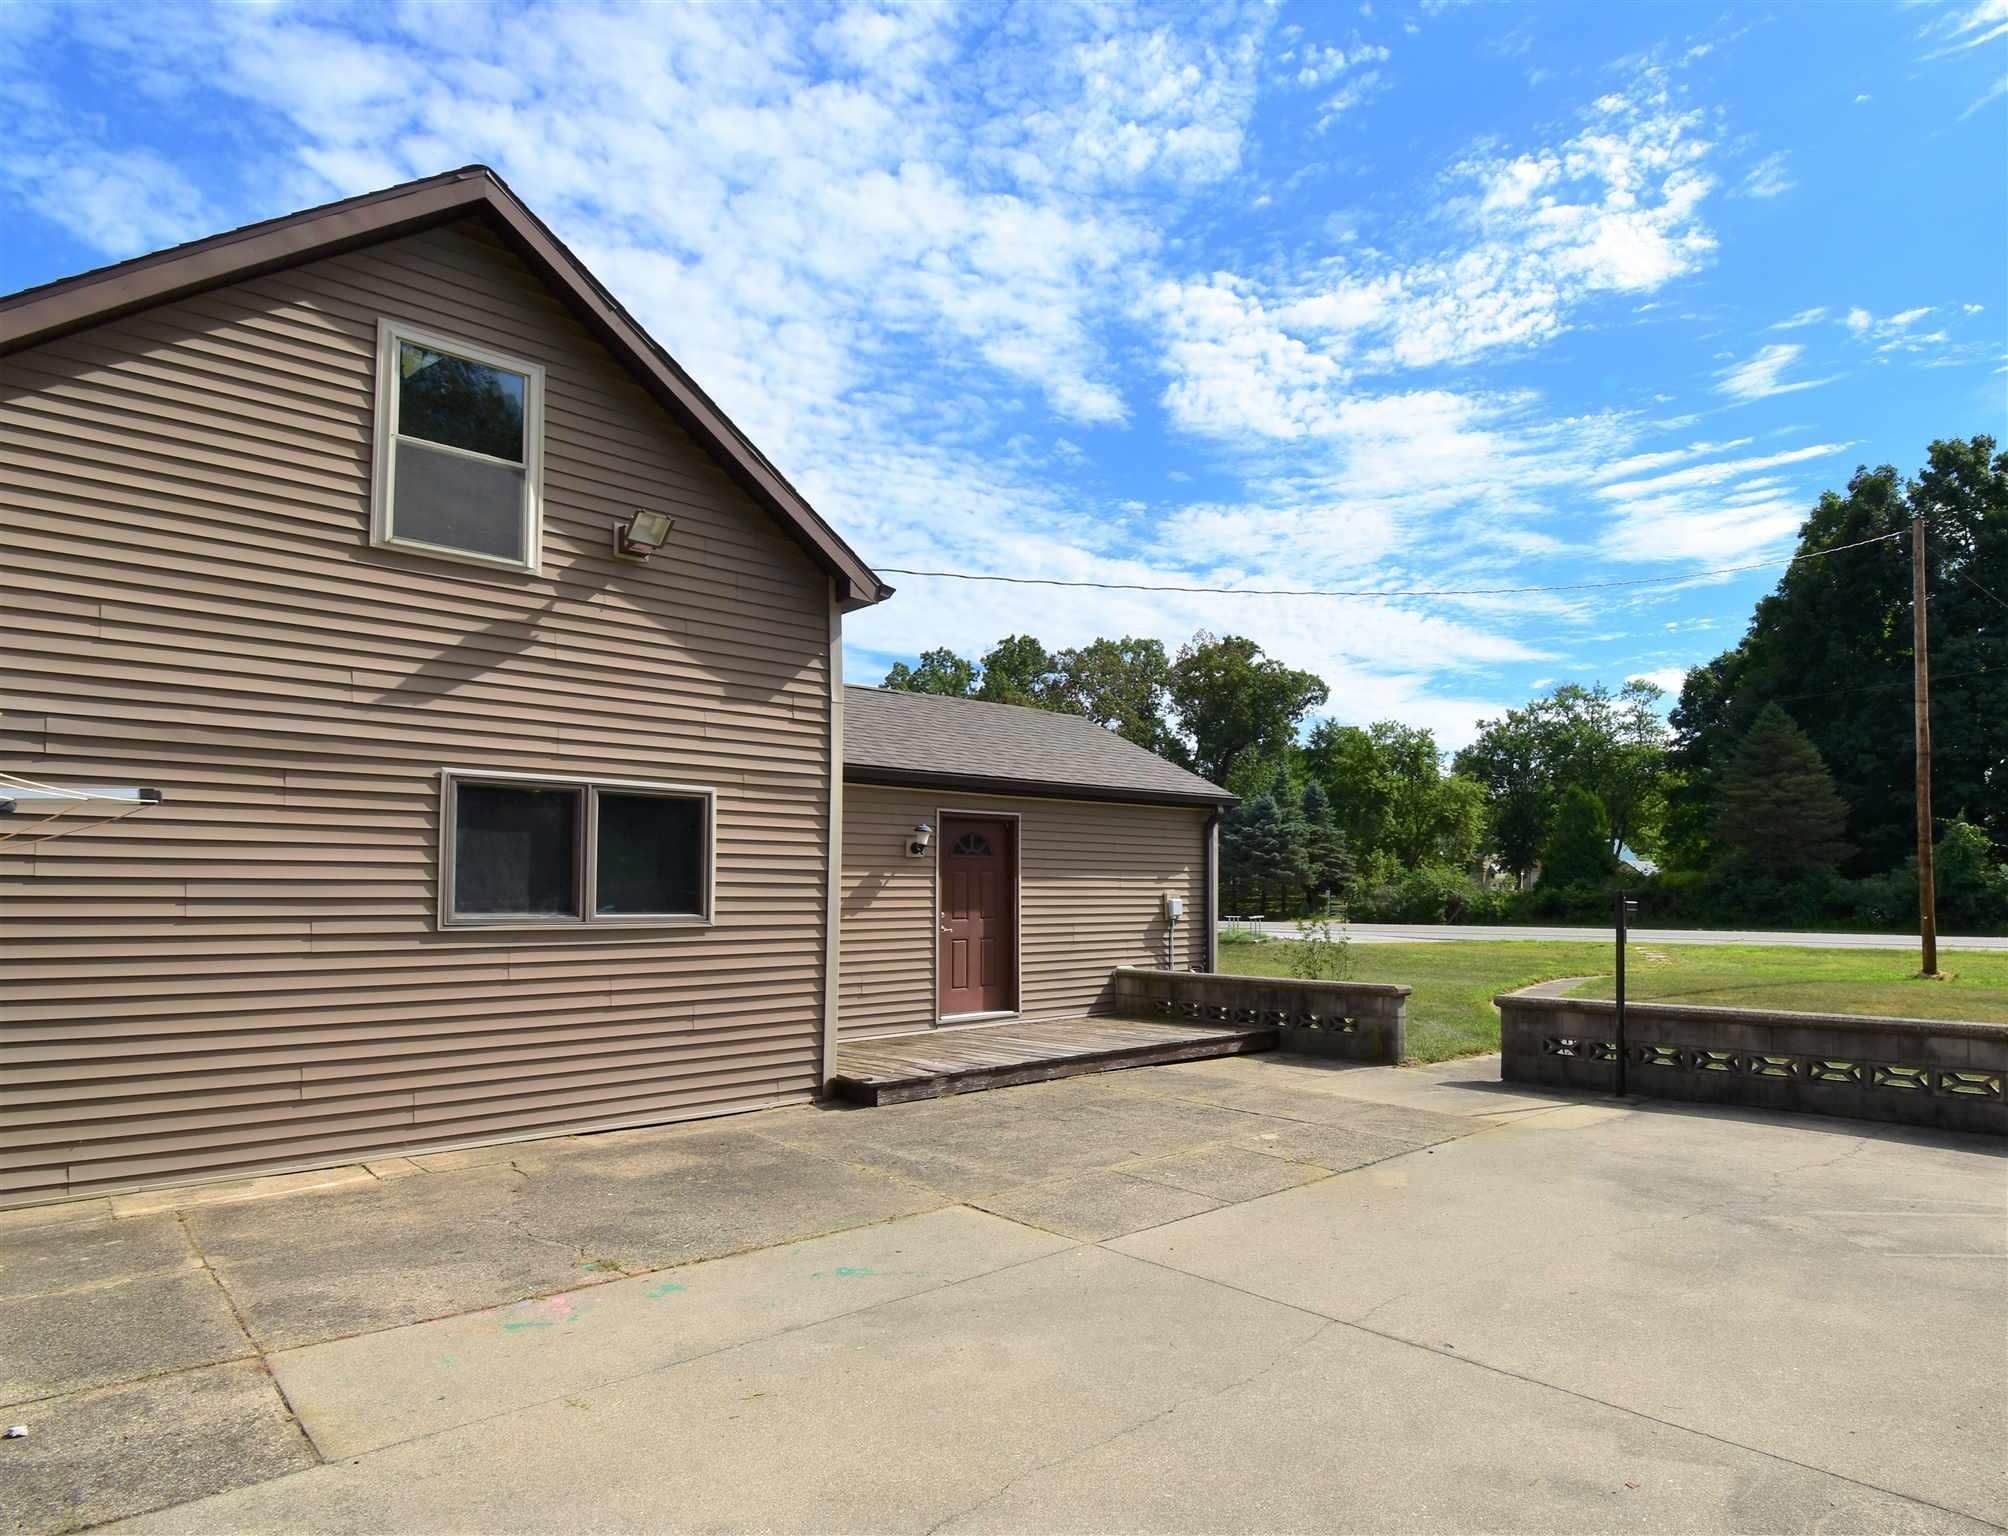 7691 N Us 35, Winamac, IN 46996